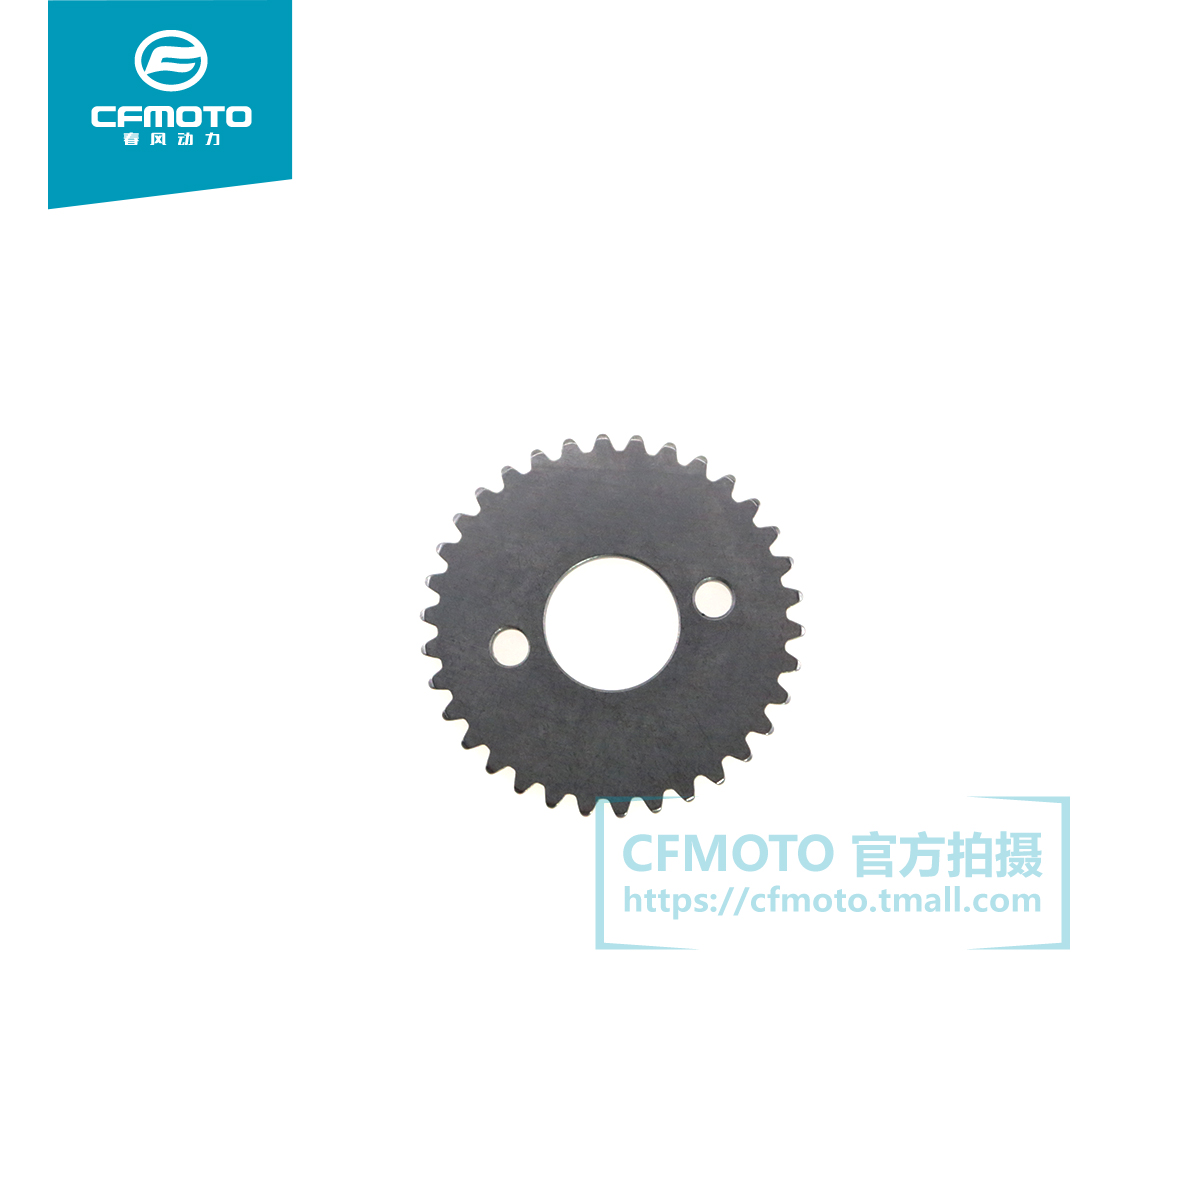 Cfmoto spring power cf150nk/sixth tranches timing sprocket motorcycle accessories baboon